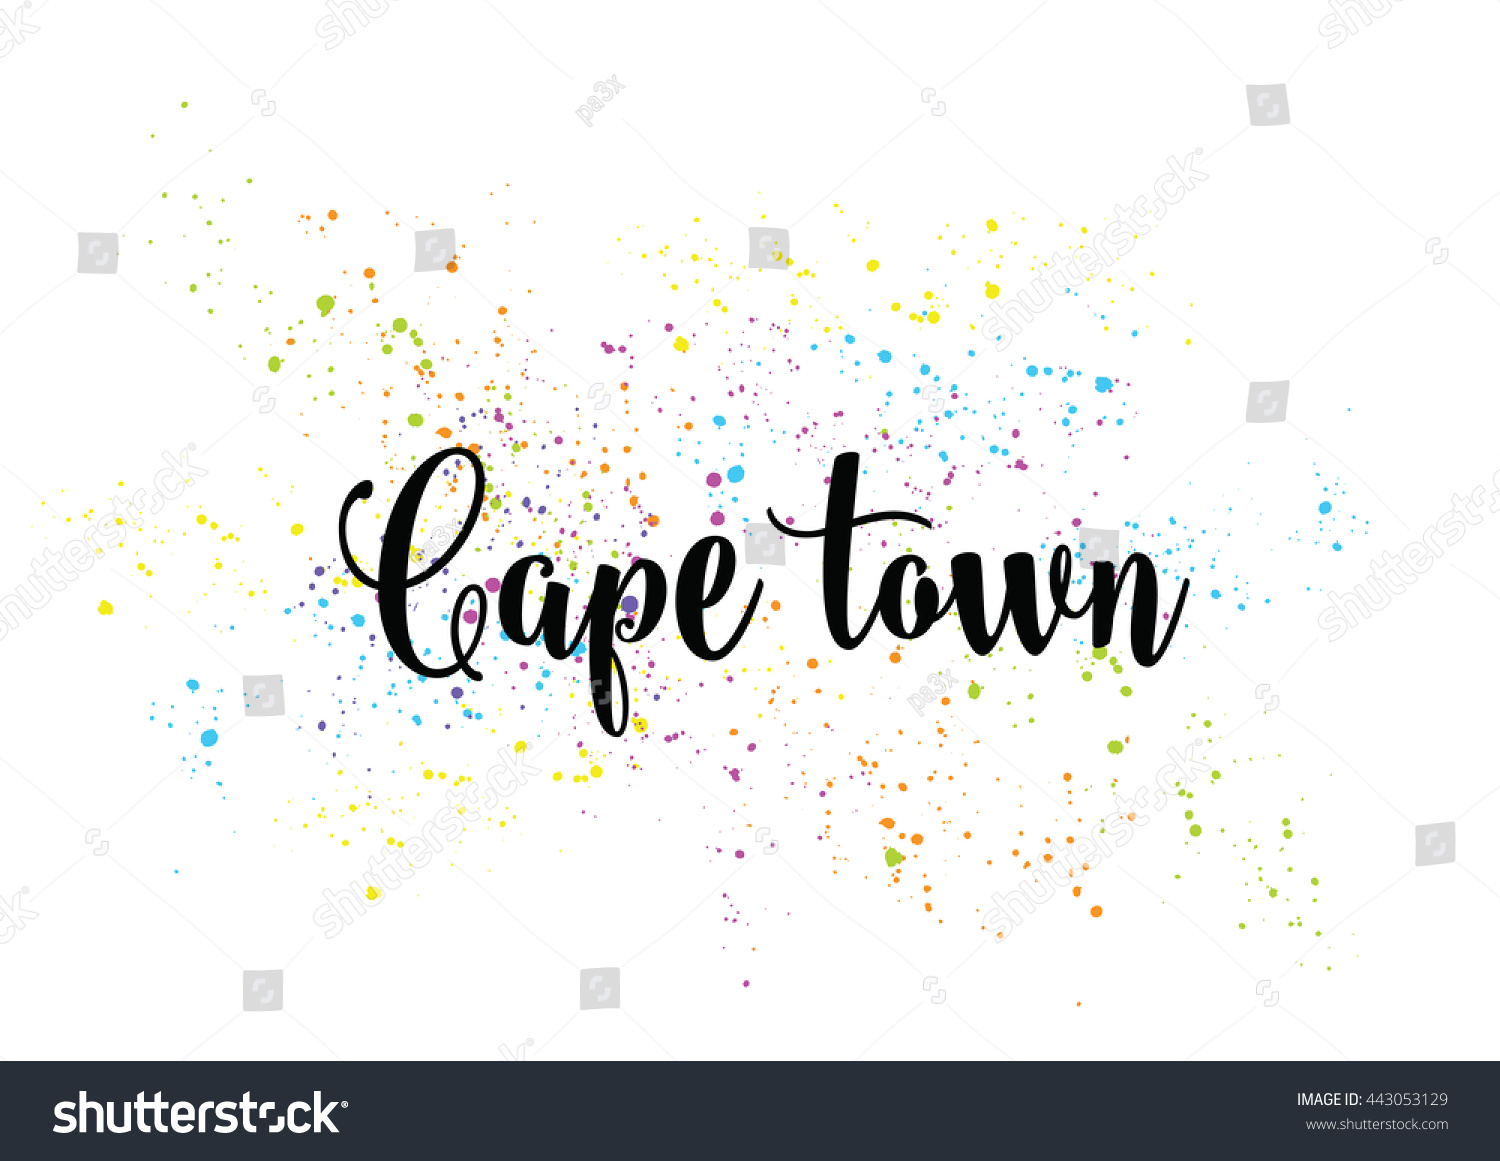 Cape Town South Africa Capital City Stock Vector 443053129